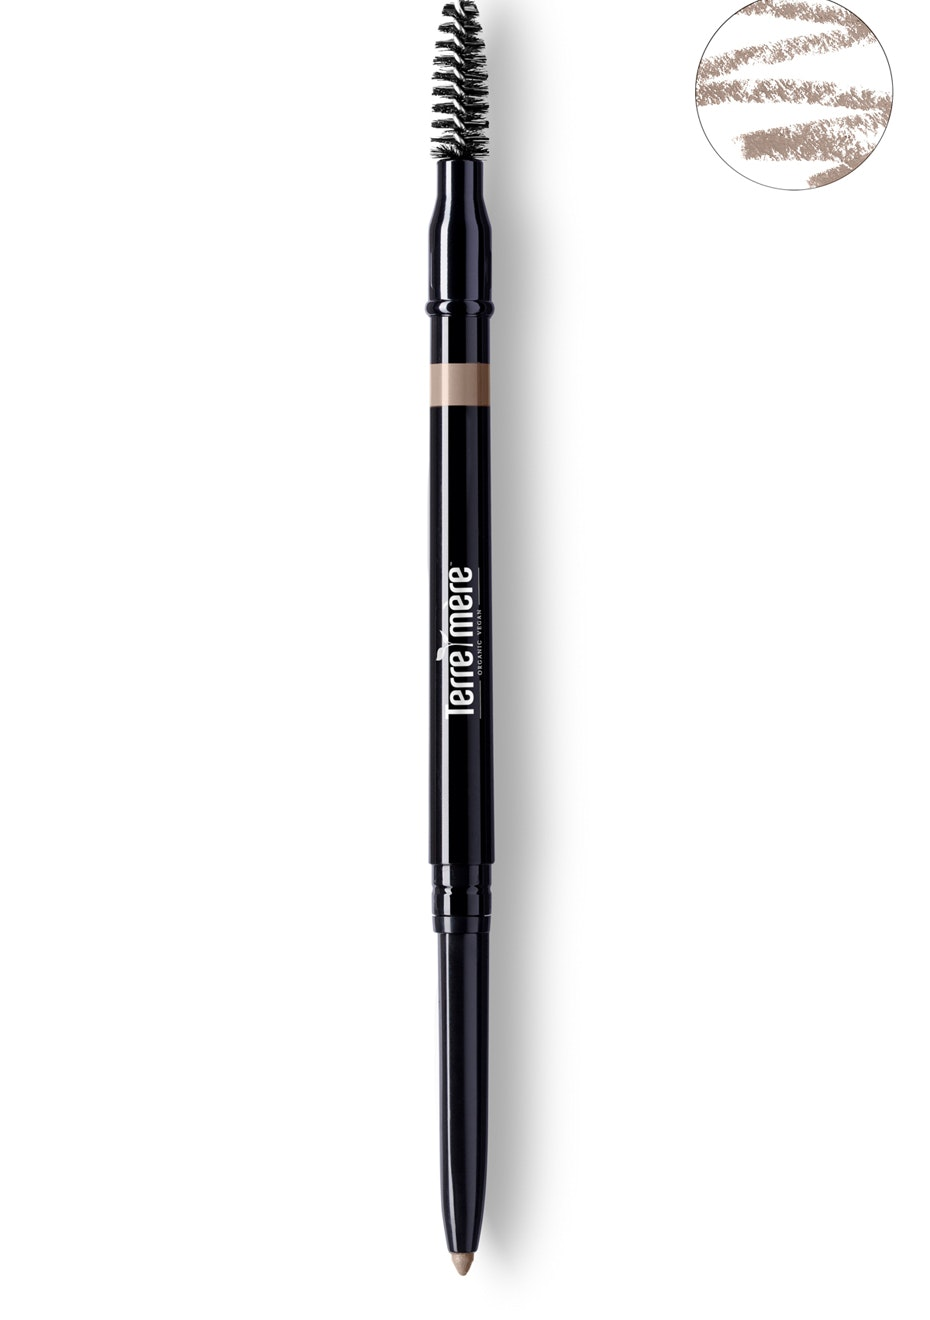 Terre Mere - Indelible Brow Pencil - Blonde